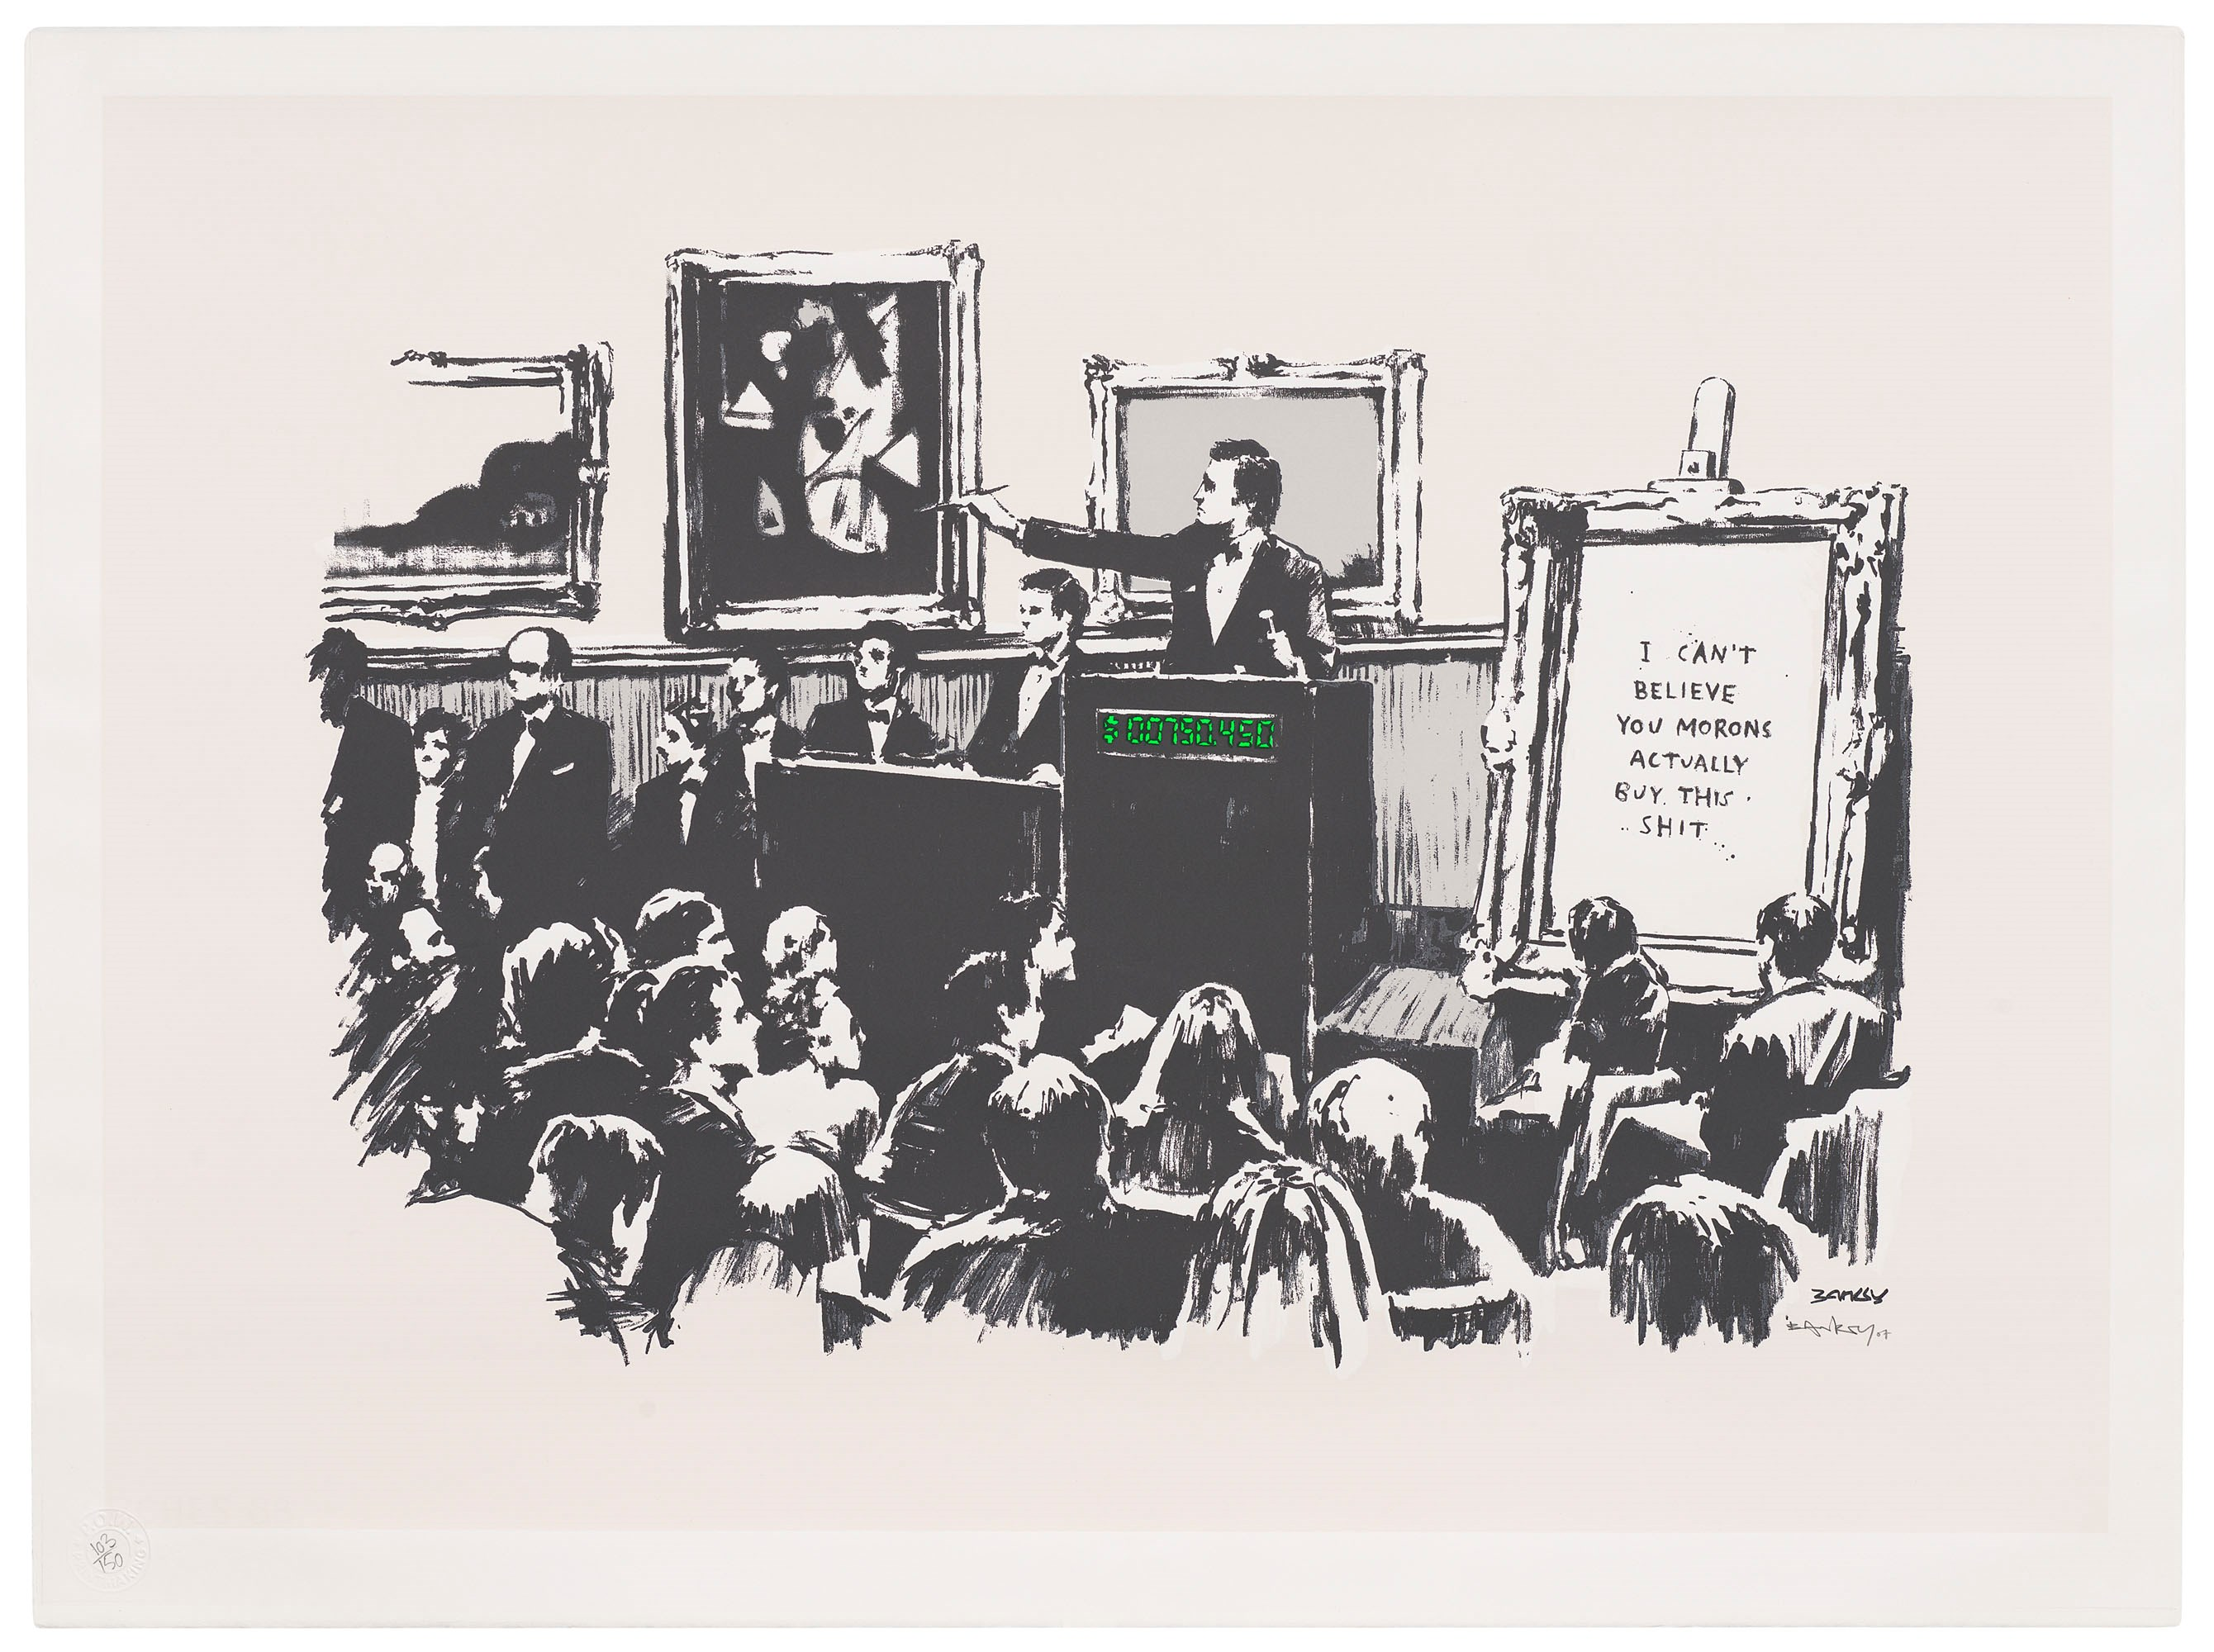 Banksy, Morons (White), 2007. Screenprint in colours. Sheet 570 x 765  mm. Sold for £75,000 on 1 April 2021 at Christie's Online